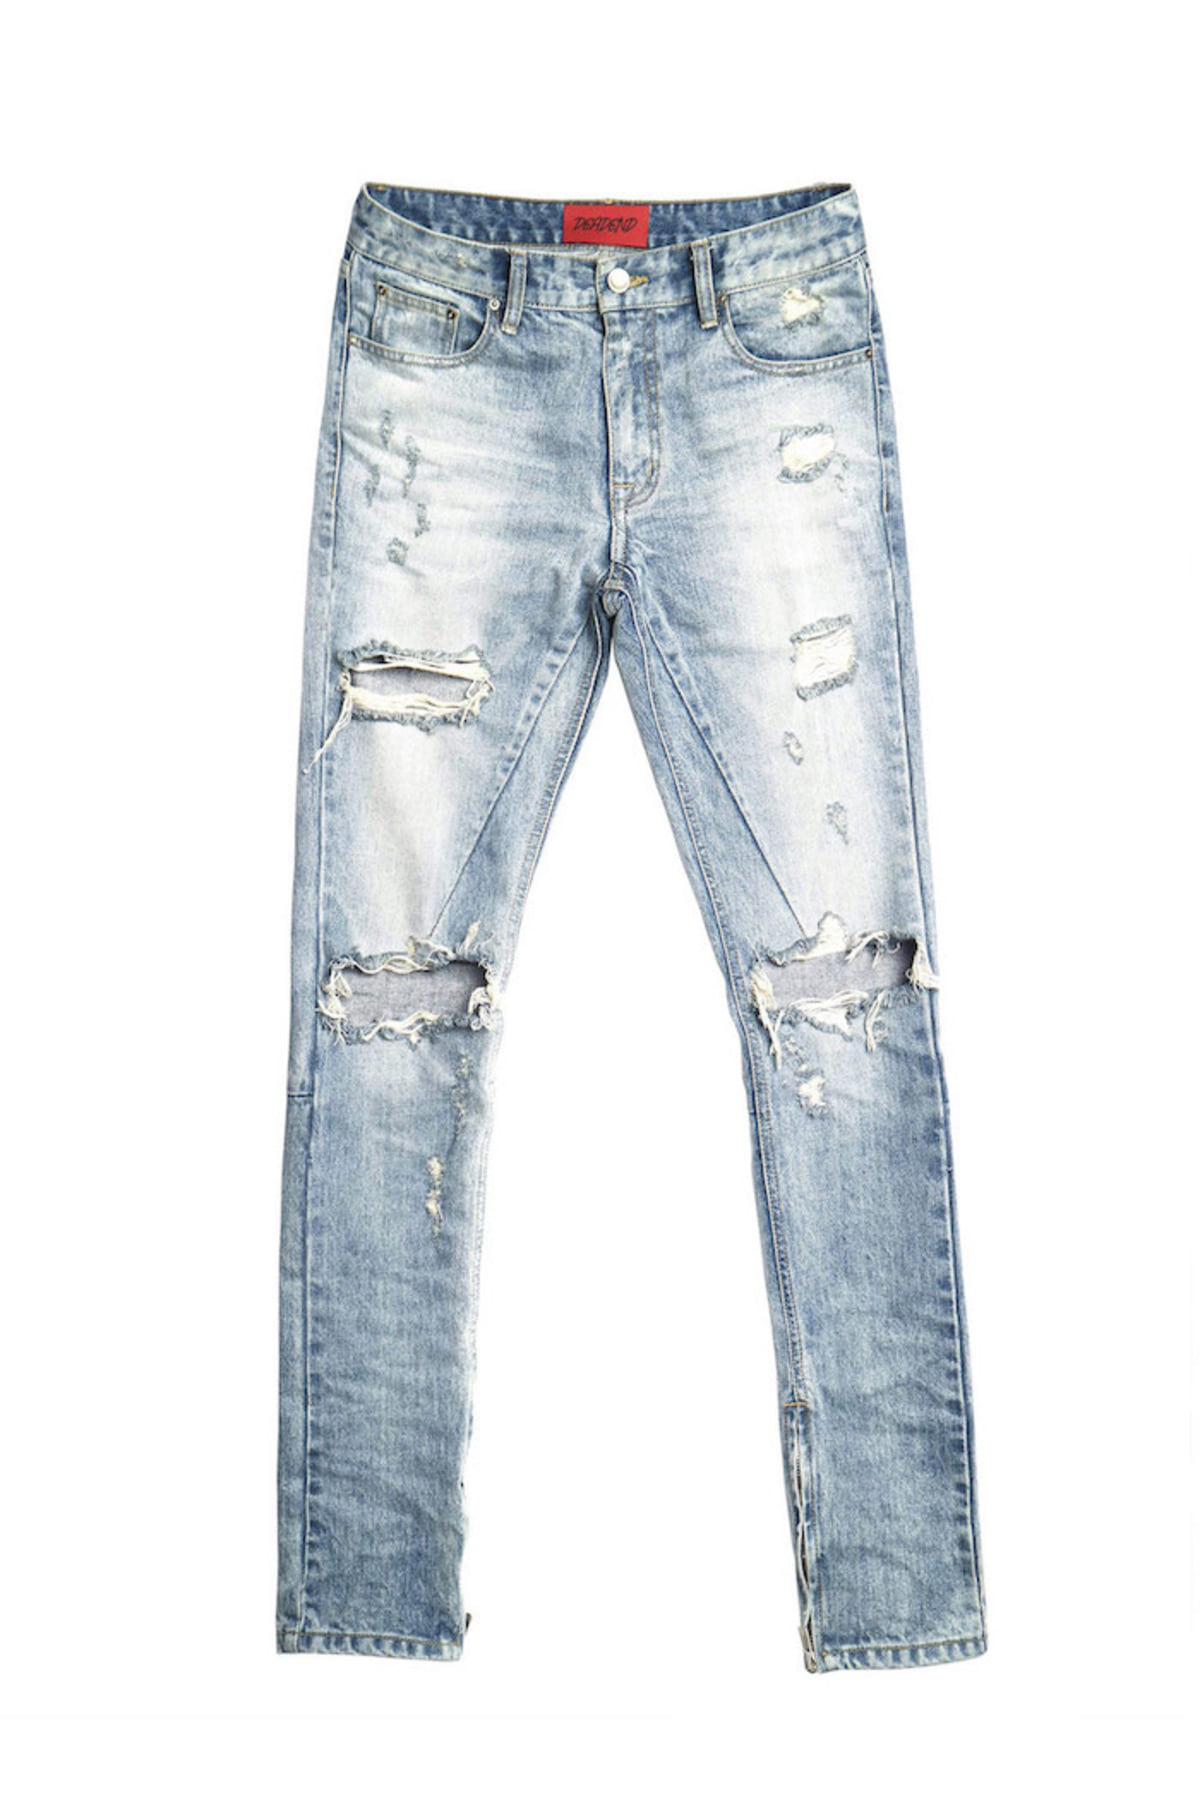 EXPLODE ZIPPER DENIM JEANS